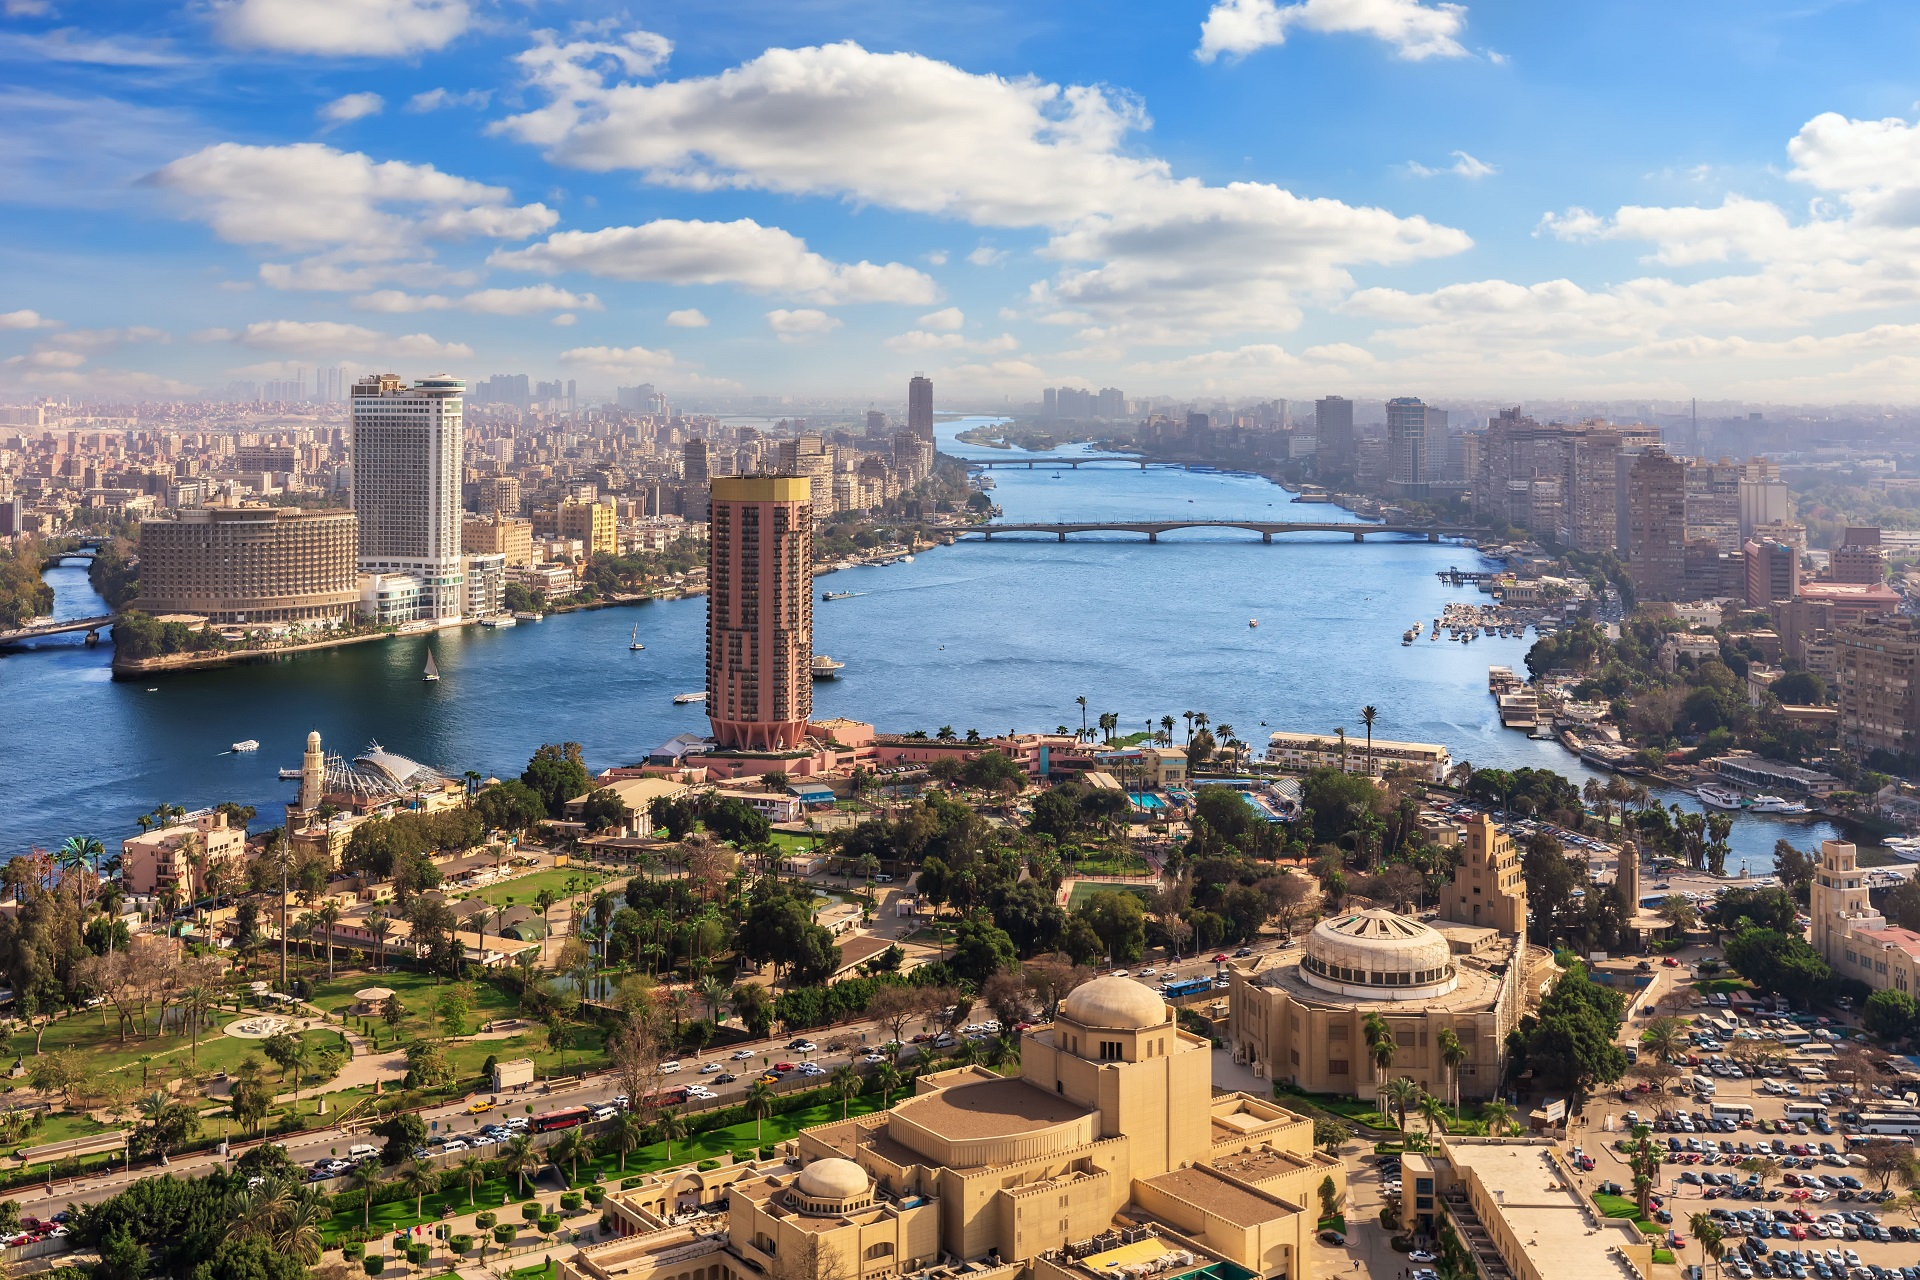 nile-center-cairo-egypt-view-from (1)